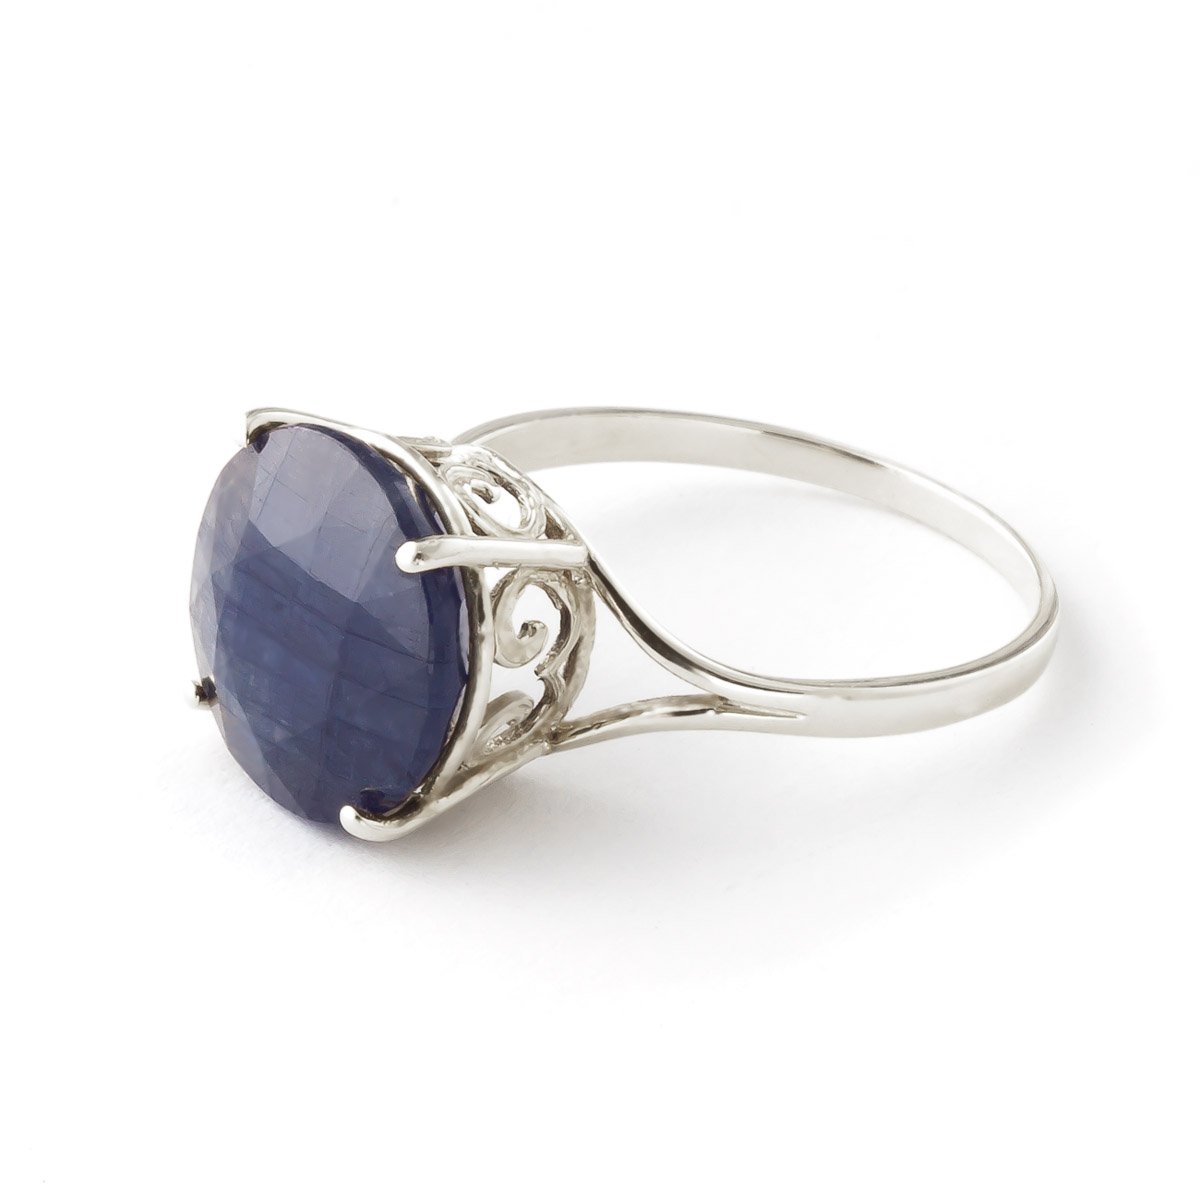 Round Cut Sapphire Ring 9.5 ct in 18ct White Gold